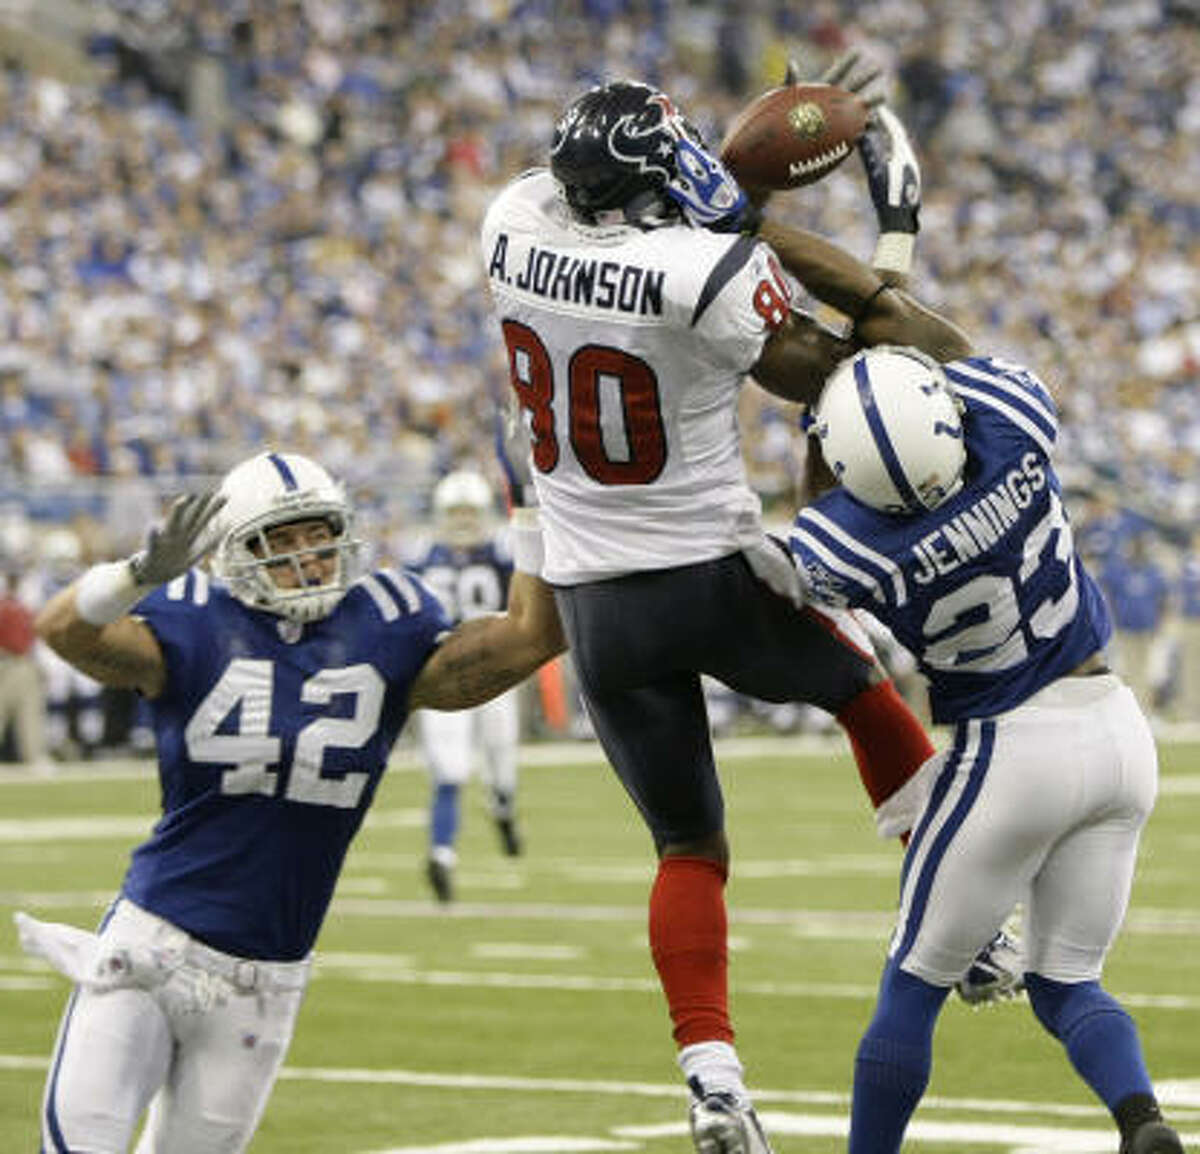 Andre Johnson Position: Wide receiver Receiving yards: 1,142